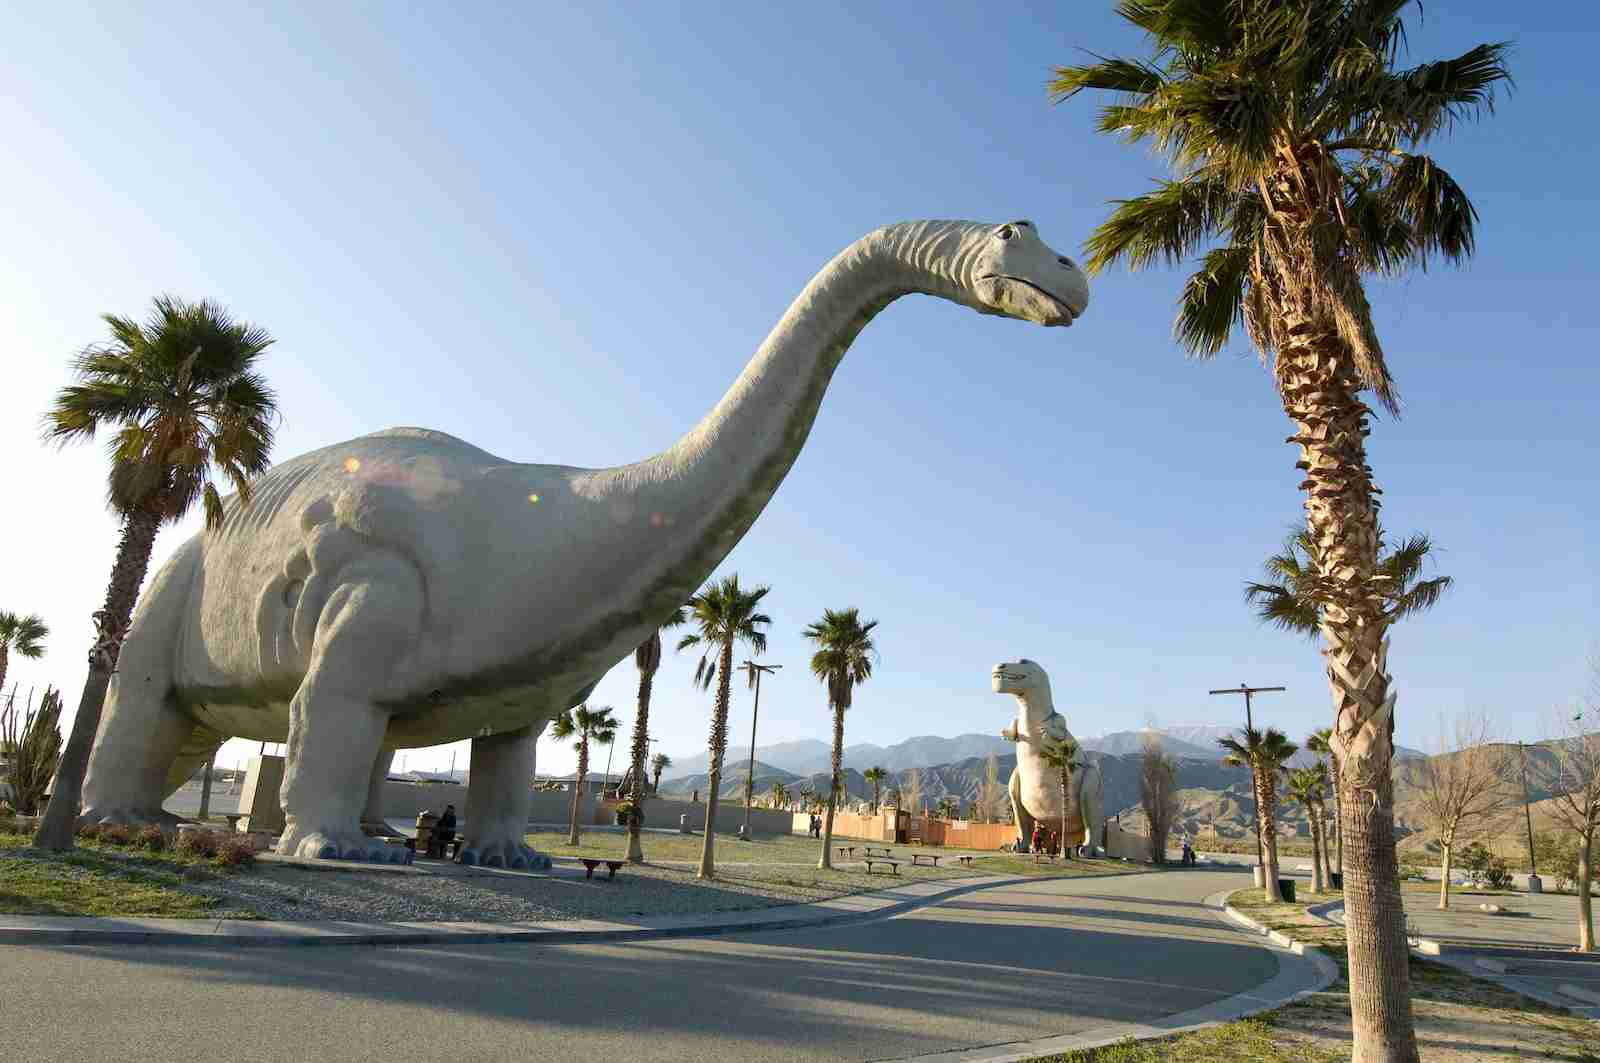 The Cabazon Dinosaur roadside attraction. (Photo by Robert Landau/Getty Images)